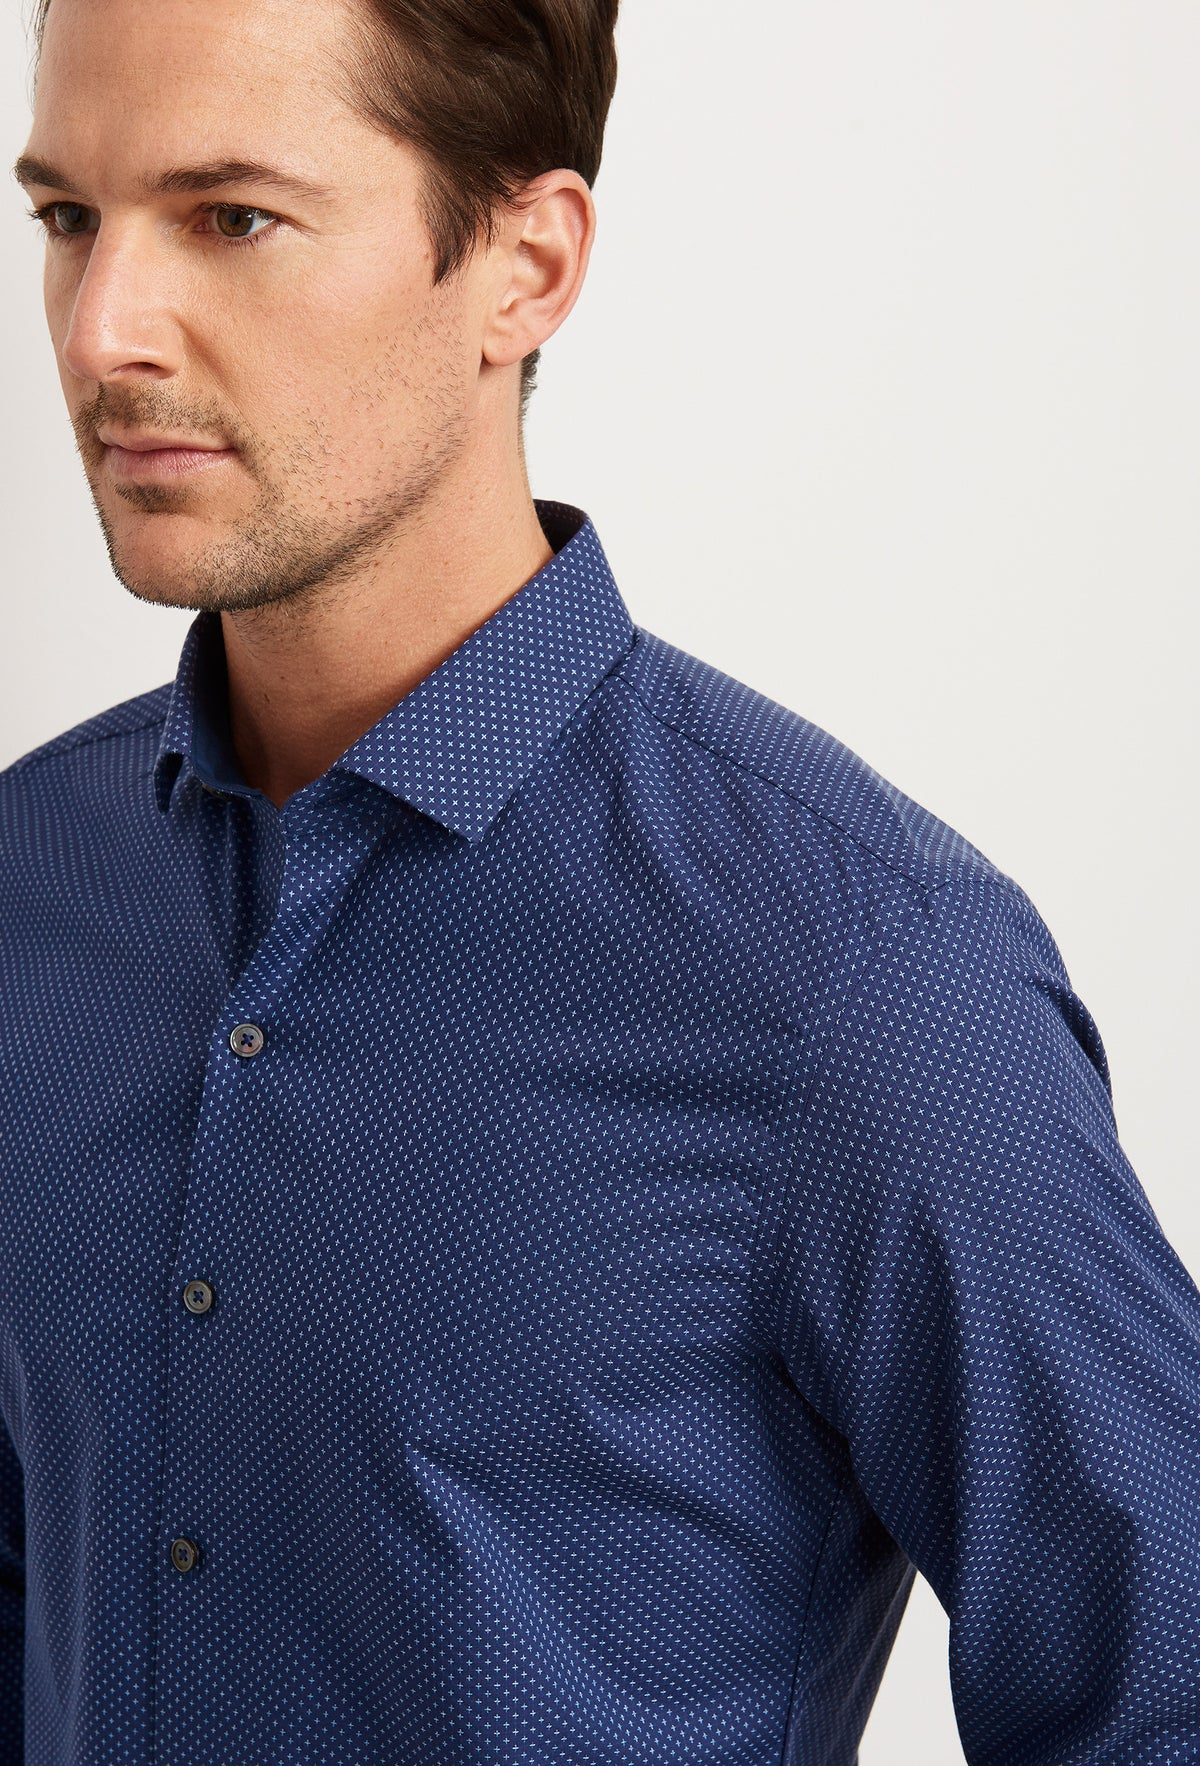 ZACHARY-PRELL-Klassen-ShirtsModern-Menswear-New-Dress-Code